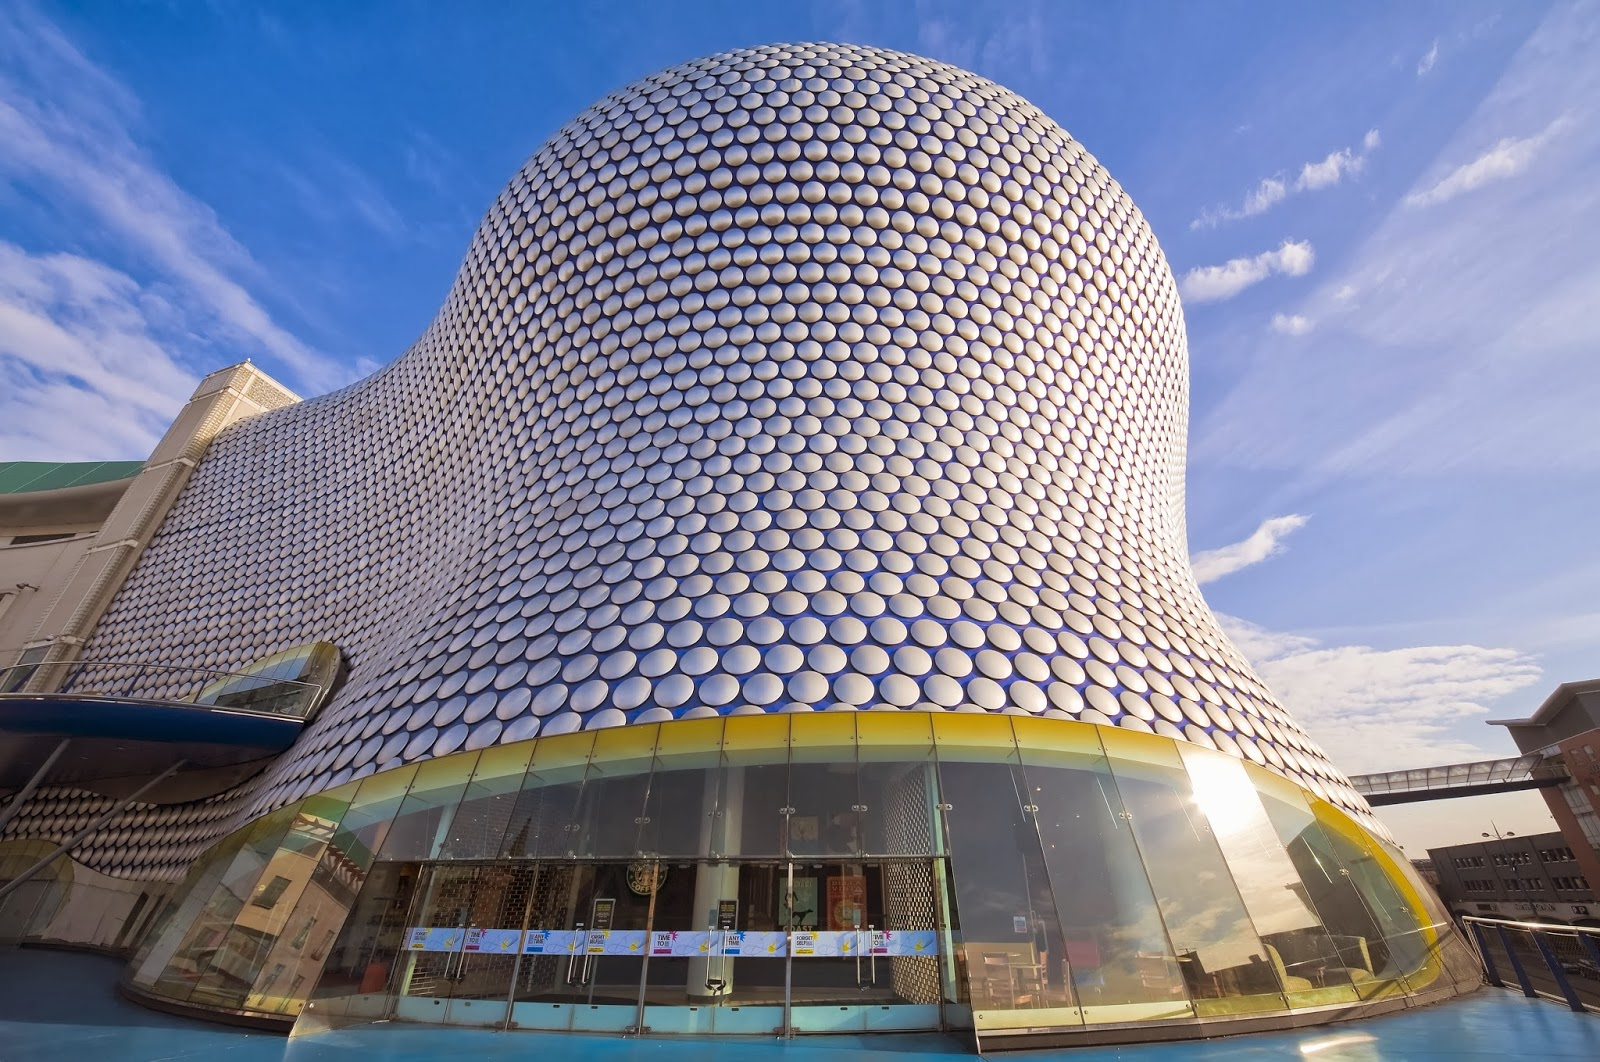 Design selfridges building birmingham for Store building design